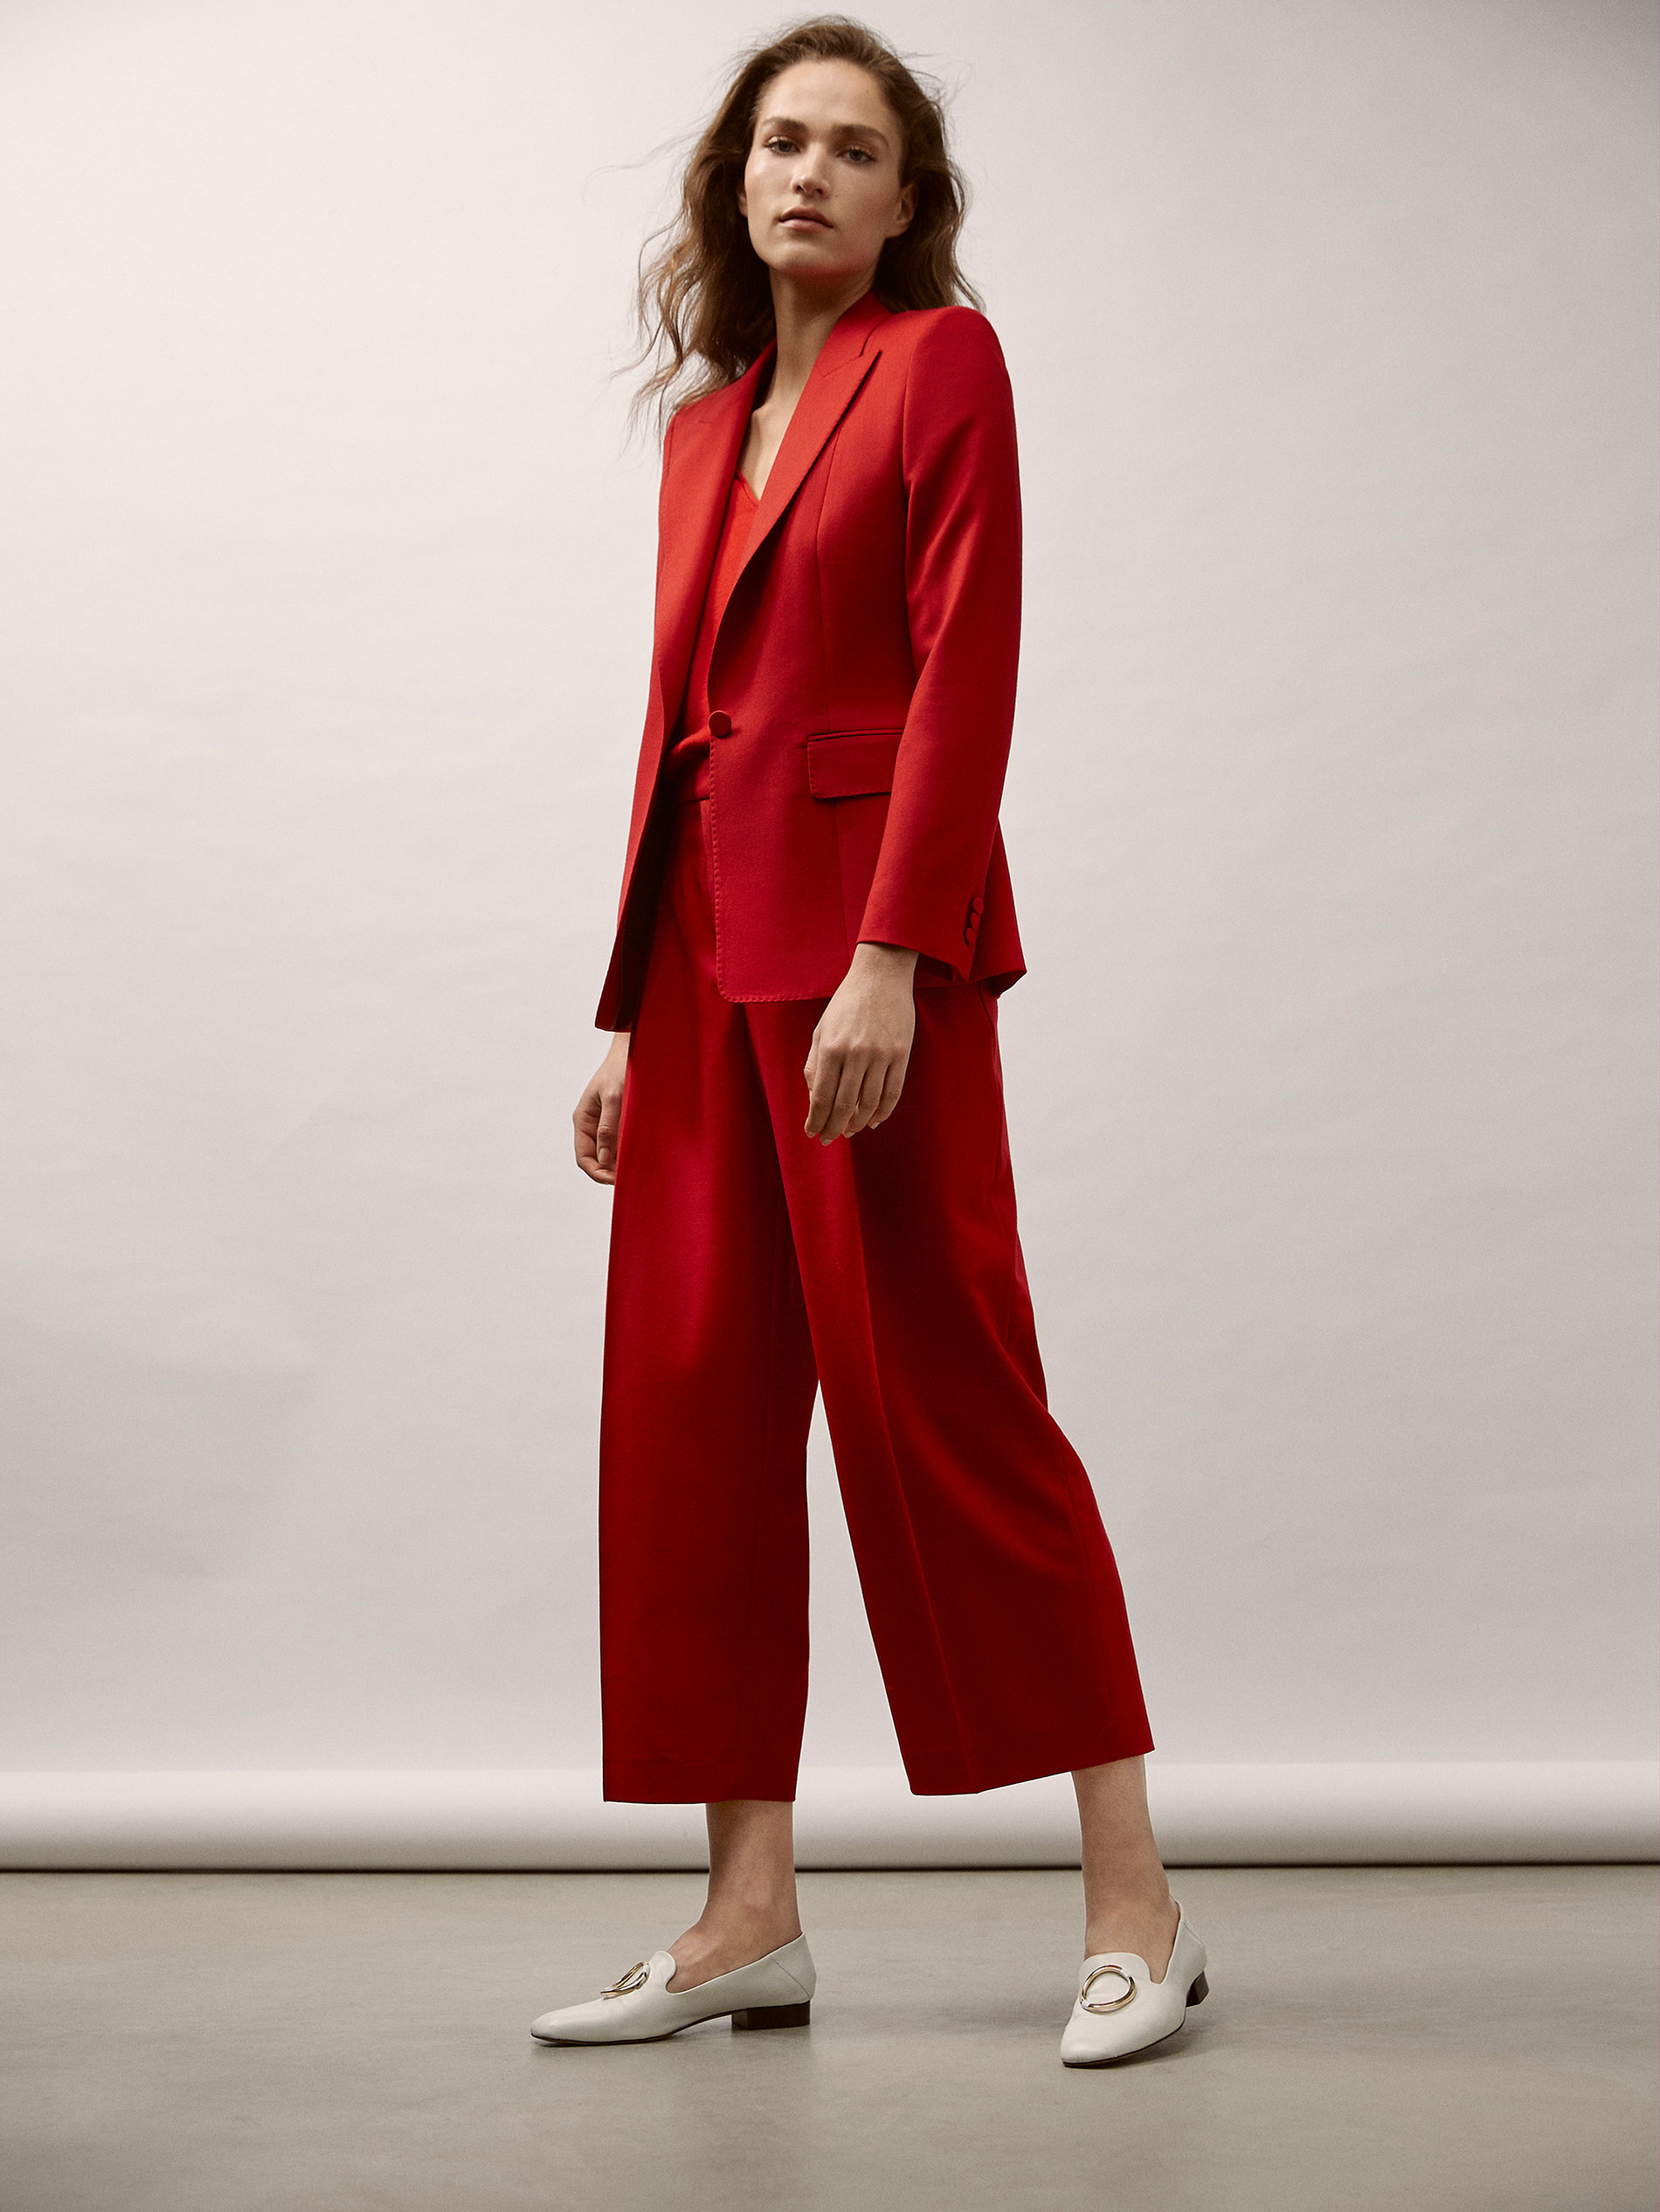 6bb5fda8bdd Massimo Dutti - CROPPED FIT RED WOOL SUIT TROUSERS WITH DARTS DETAIL - 4